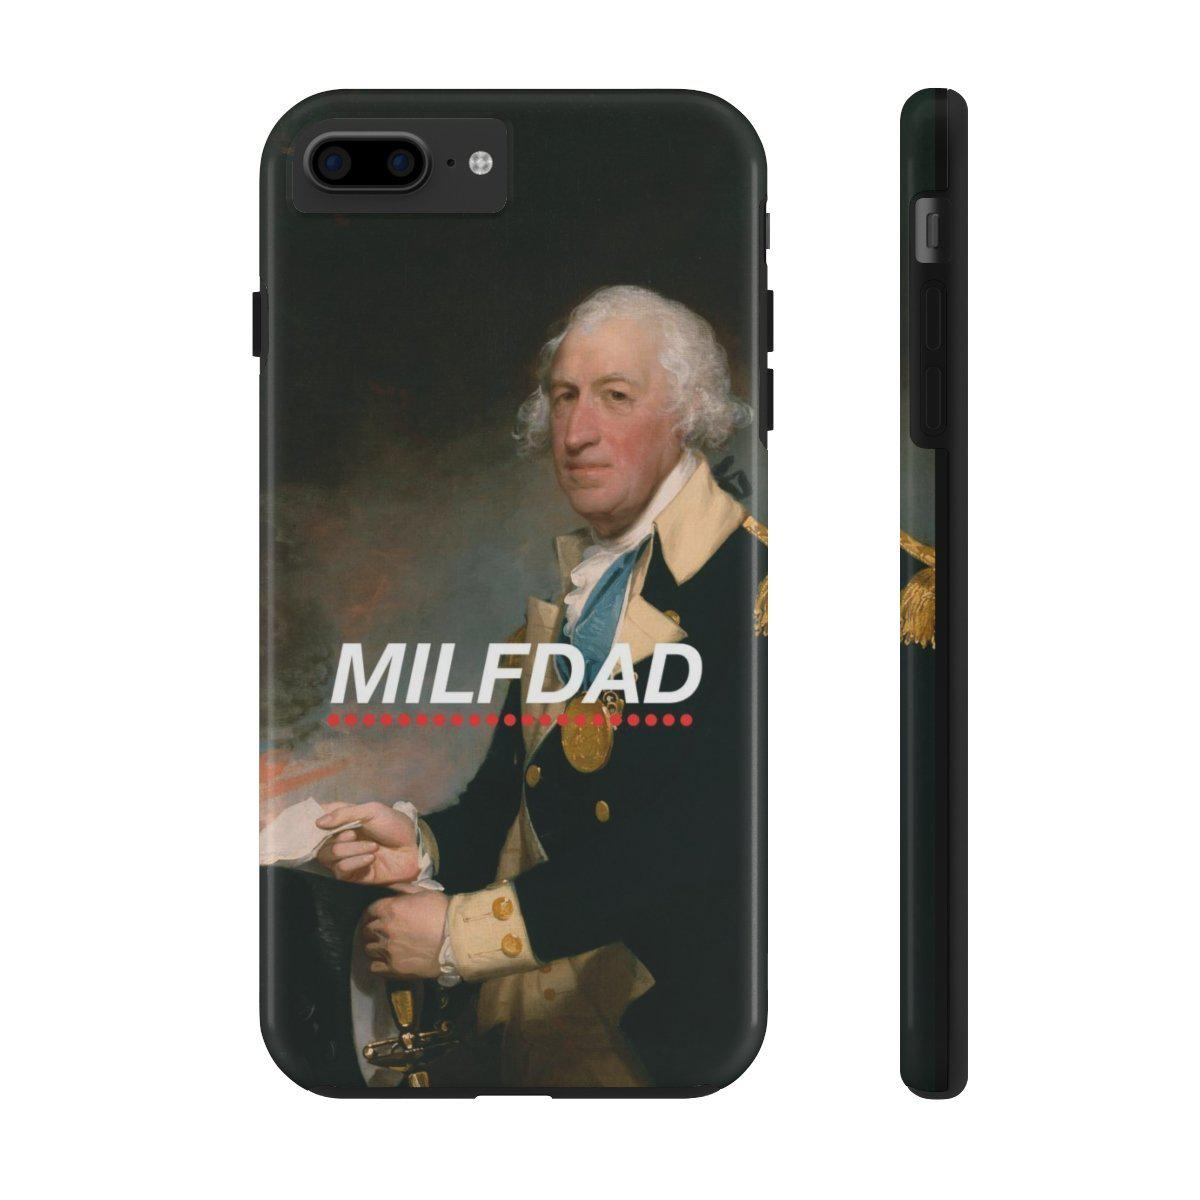 HORATIO PHONE CASE-MILFDAD